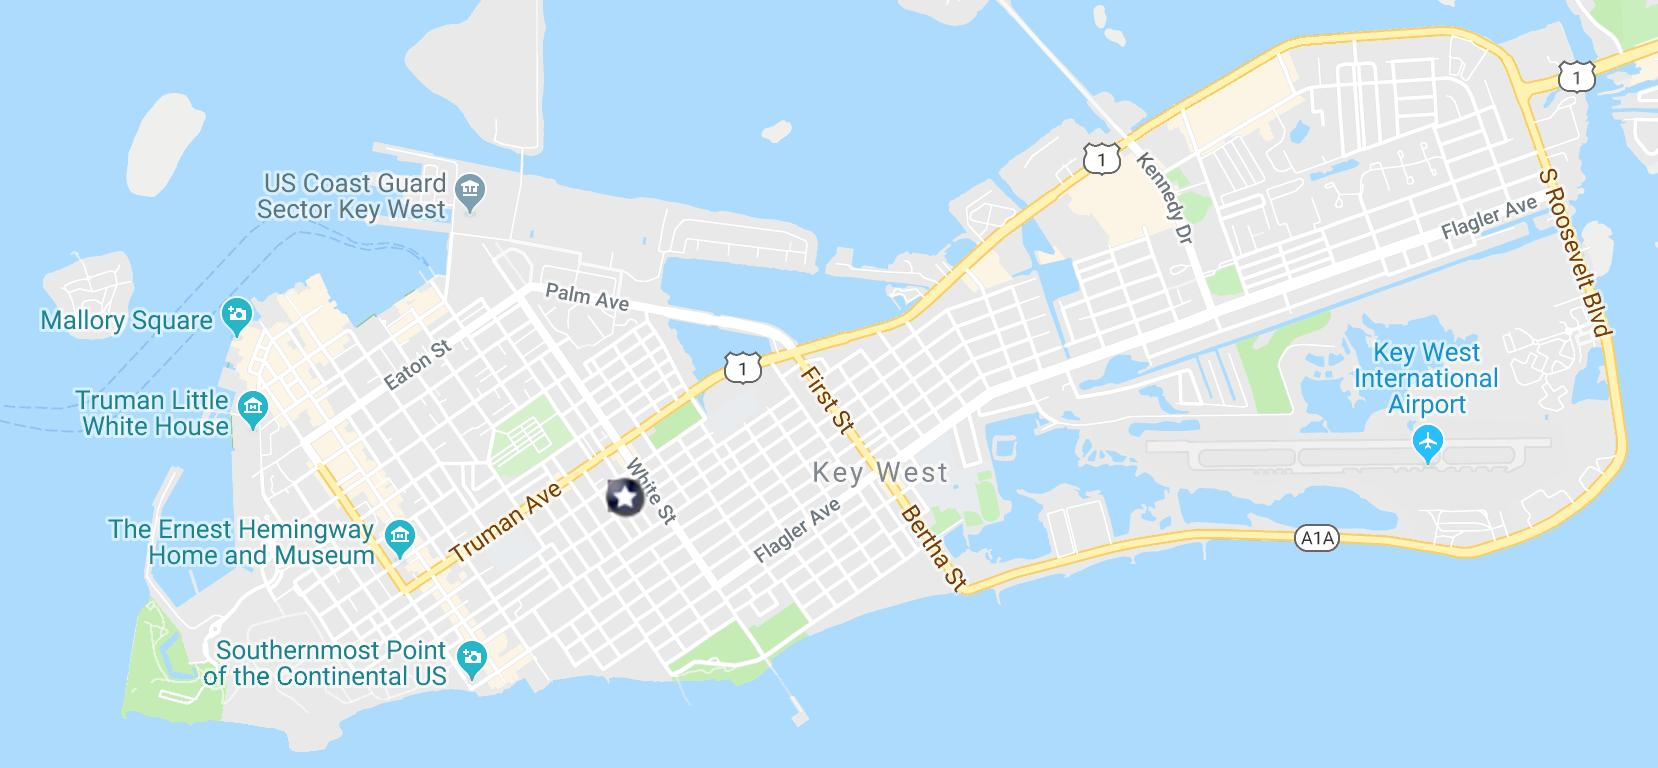 1118 Varela Street, Key West, 33040 | Ocean Sotheby's International on key west fl accommodations, big pine map, key west road map, florida keys map, key west boating map, key west maps printable, key west map pdf, key west conch republic menu, aspen co street map, old key west street map, key west tour map, key west on world map, duval st key west map, key west hotel map, key west area map, key west fl bedrooms, moline il street map, indianapolis in street map, cleveland oh street map,